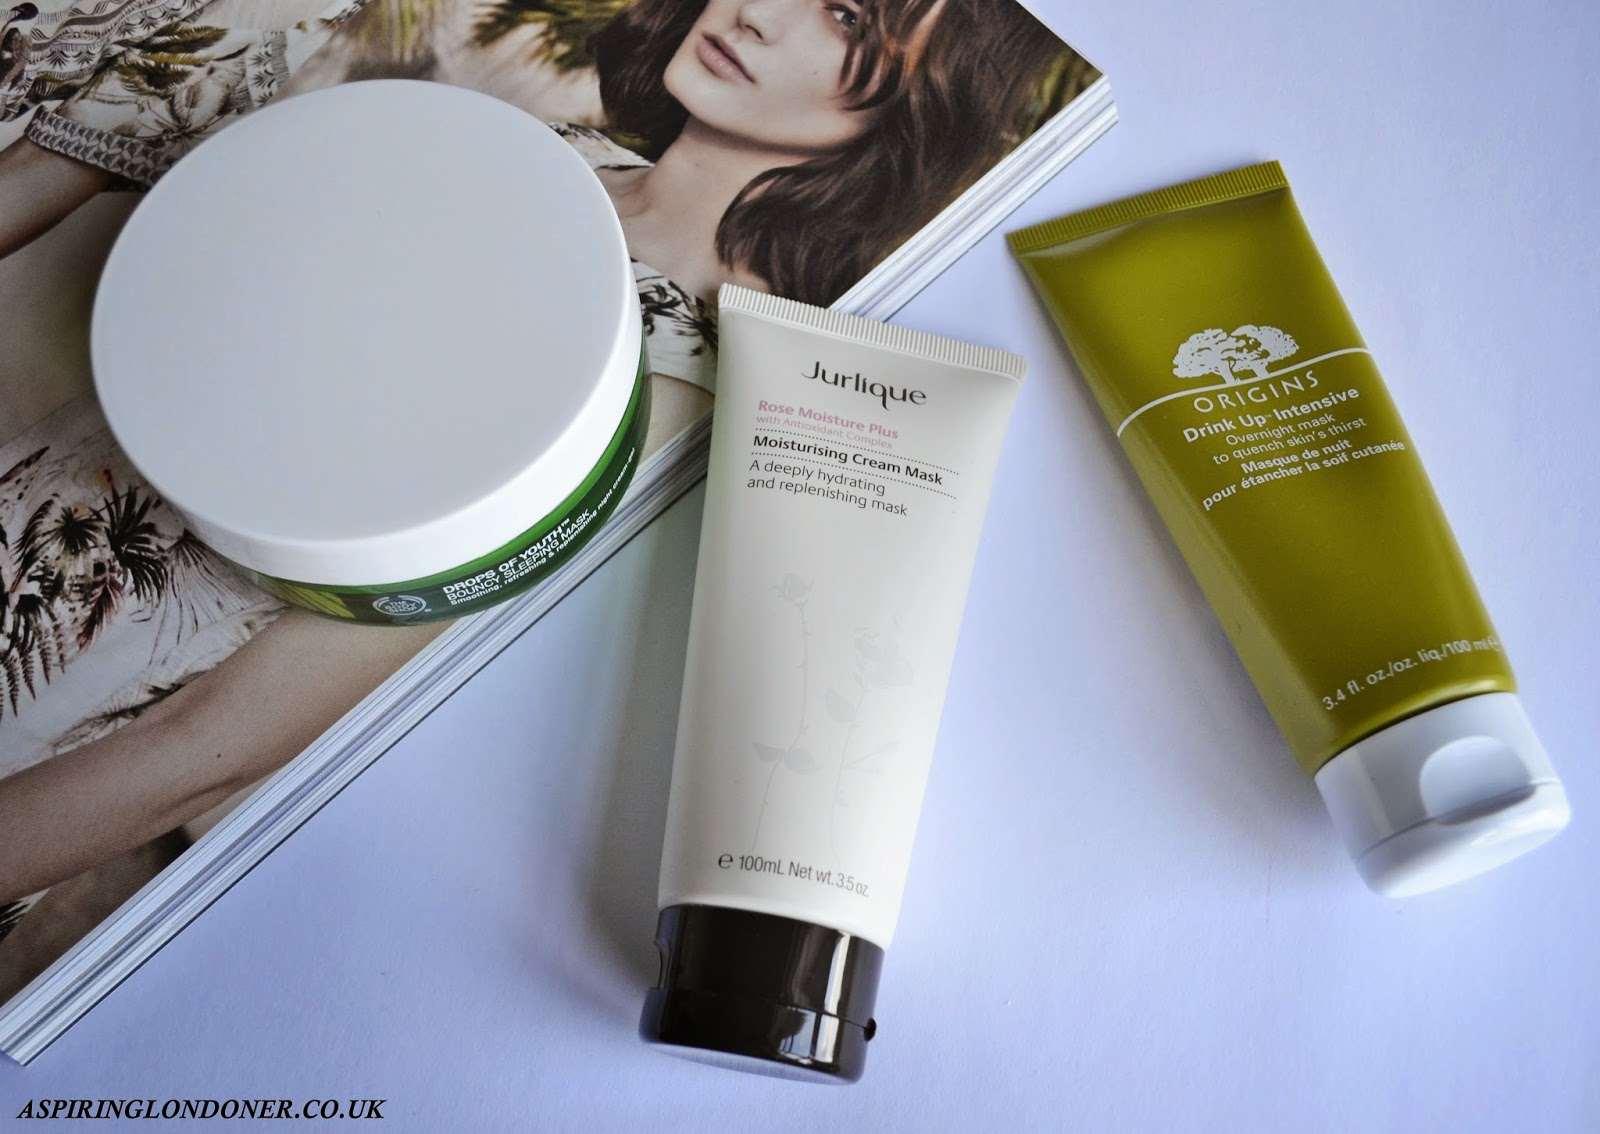 Luxury Hydrating Face Masks ft Origins, Jurlique, The Body Shop - Aspiring Londoner